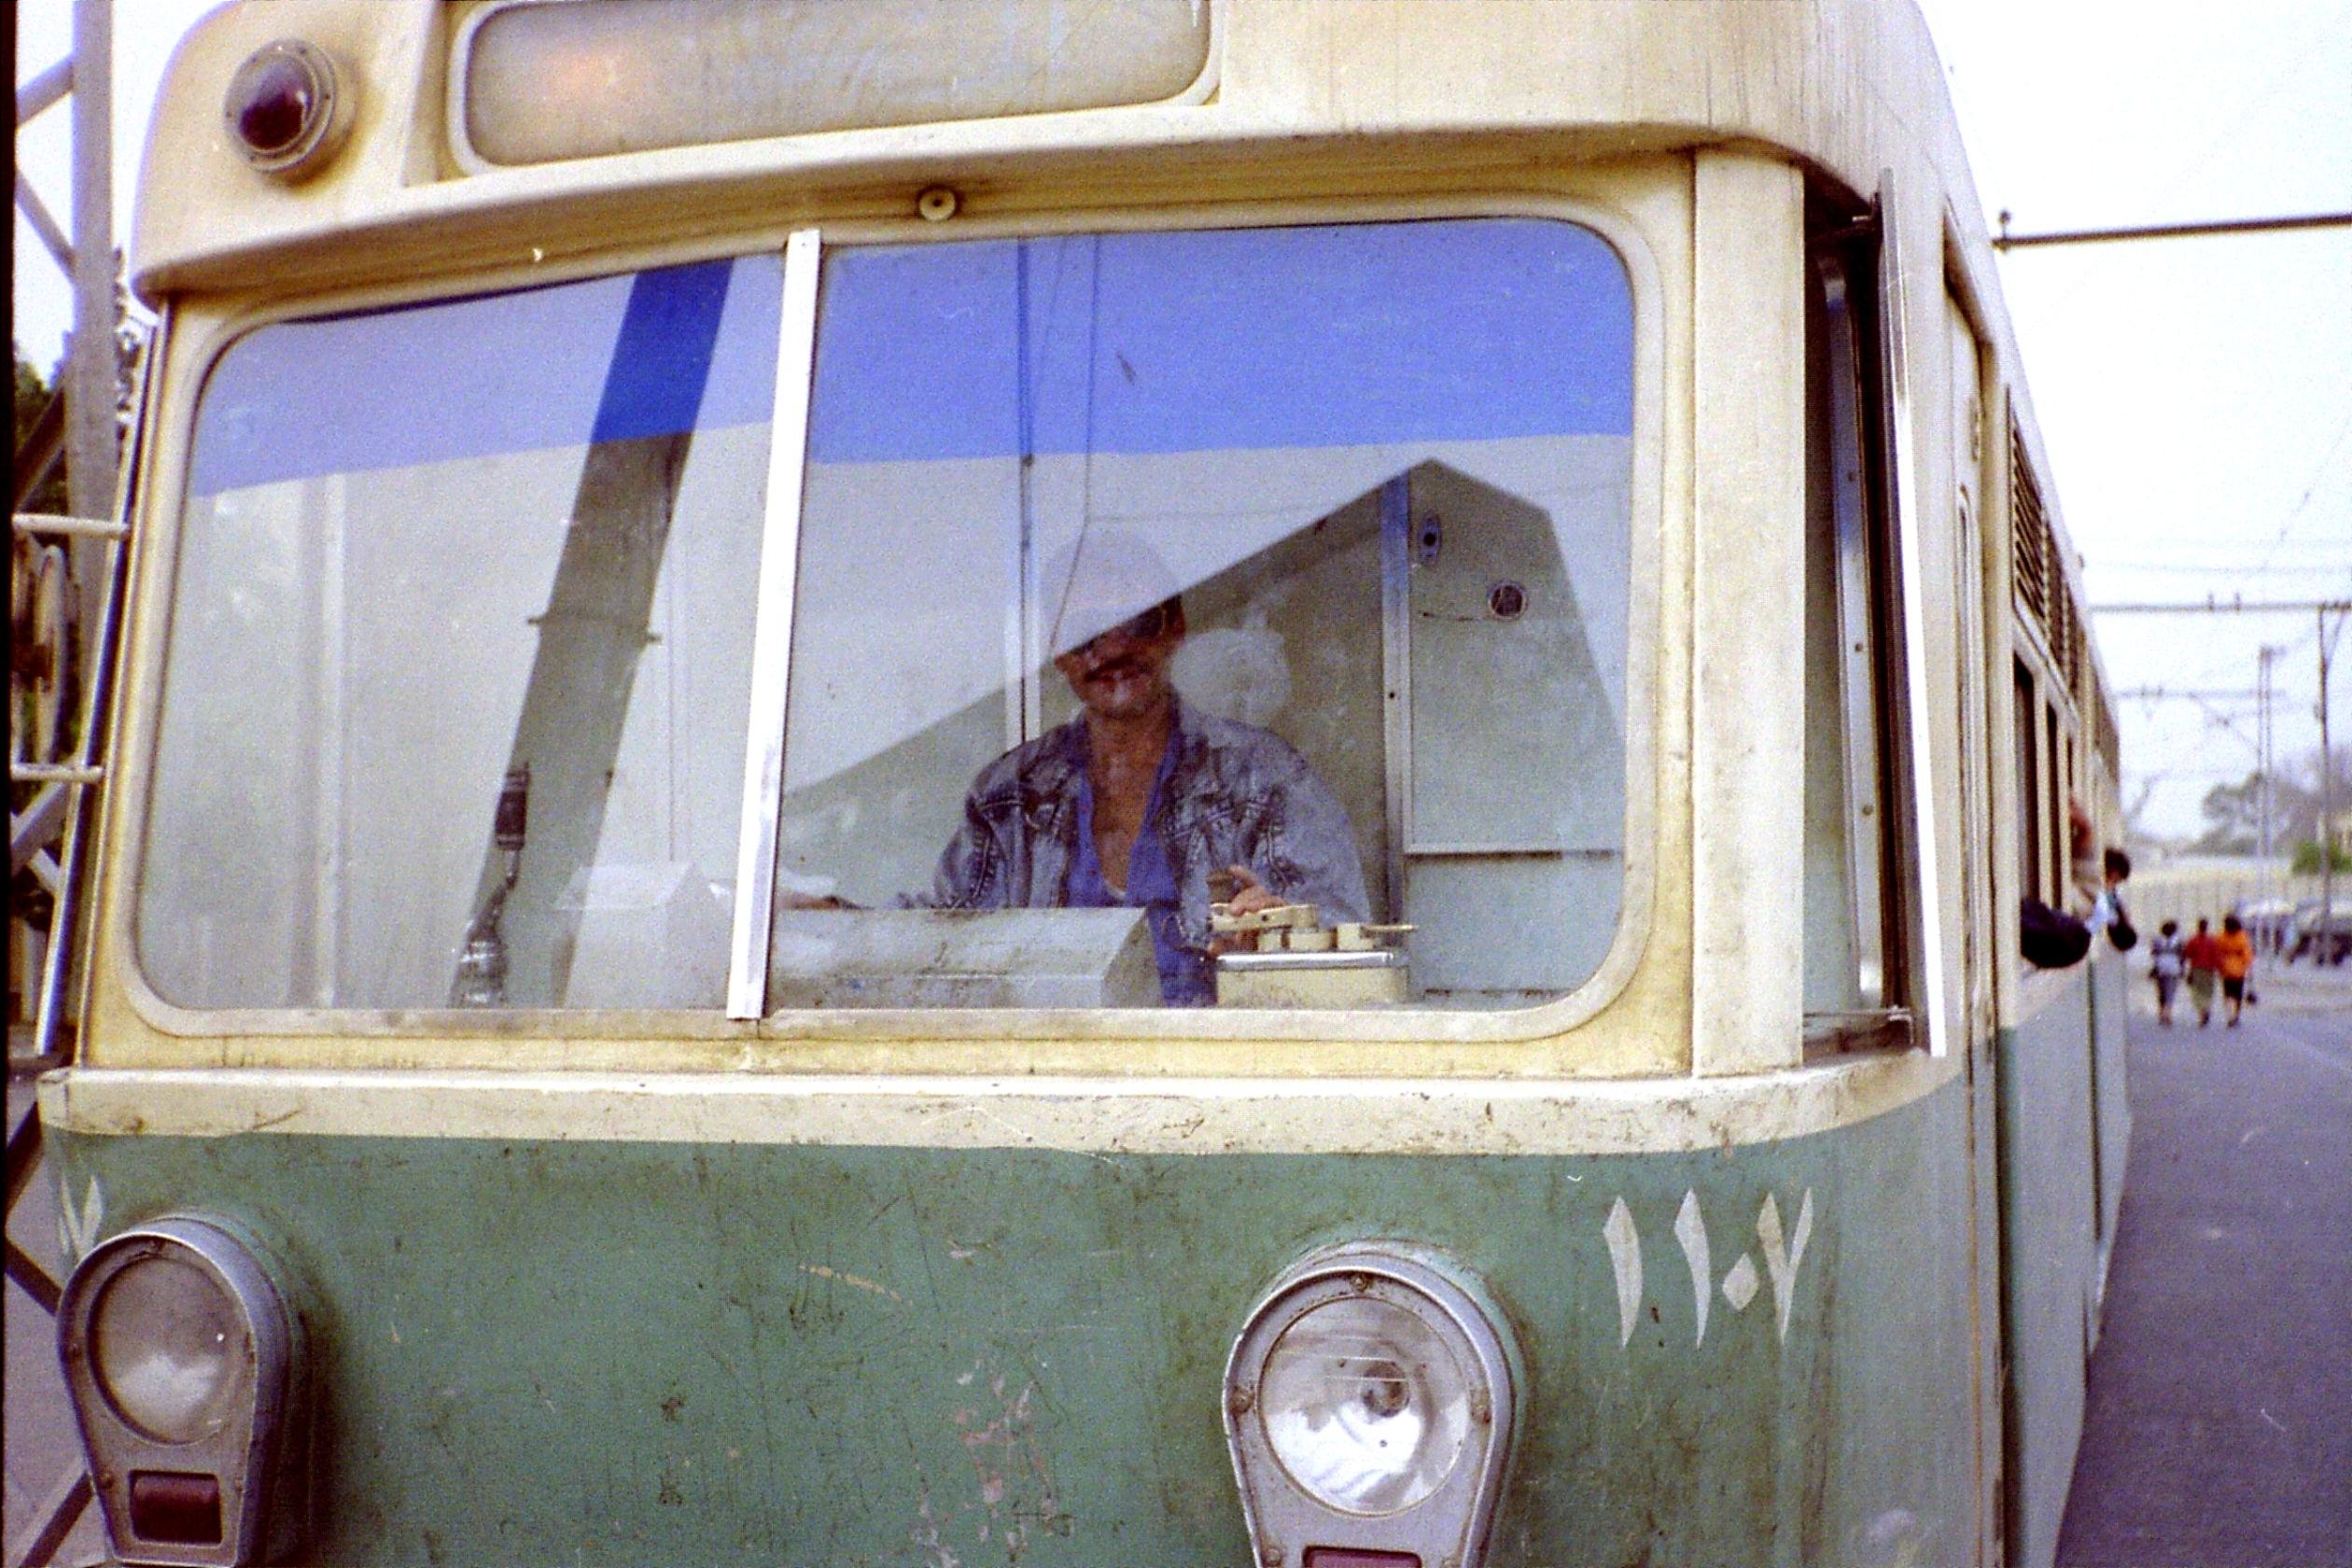 Cairo-Tram-Driver-We-Are-Railfans